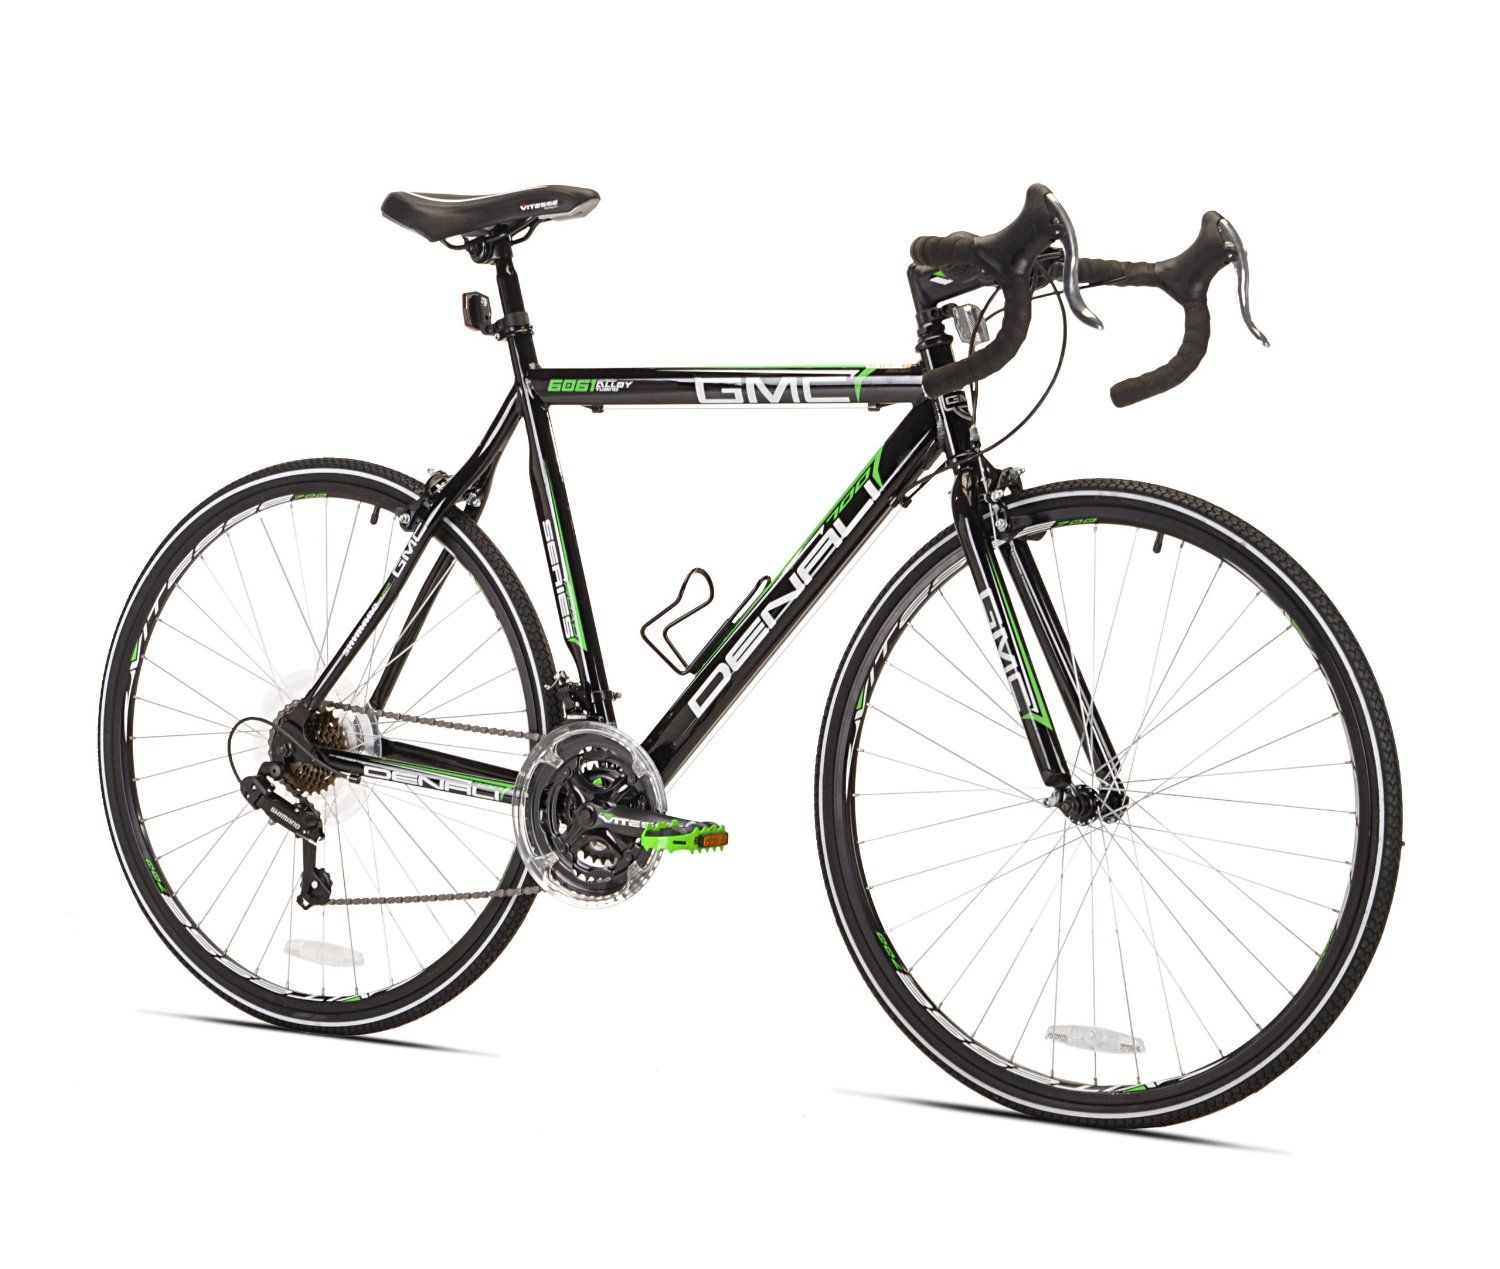 Top 10 Best Bikes For College Students Gmc Denali Road Bike